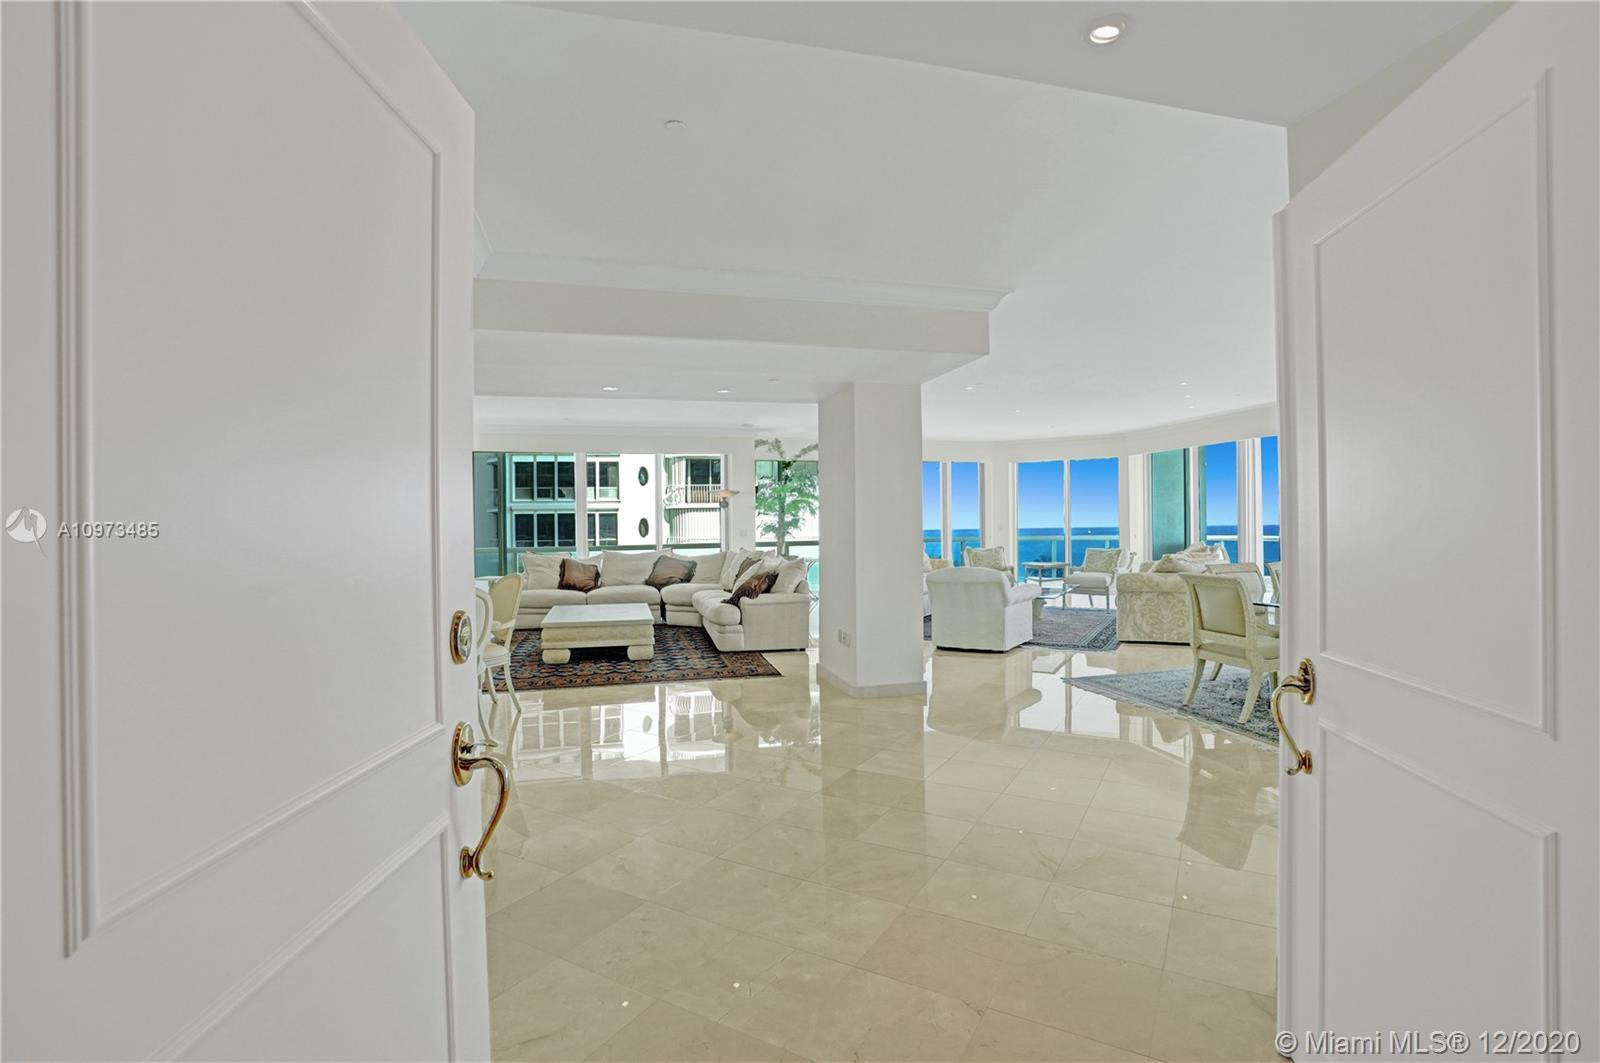 The property has been rented for 1 year Starting Feb. 14th, 2021.Fabulous oversized apartment at The